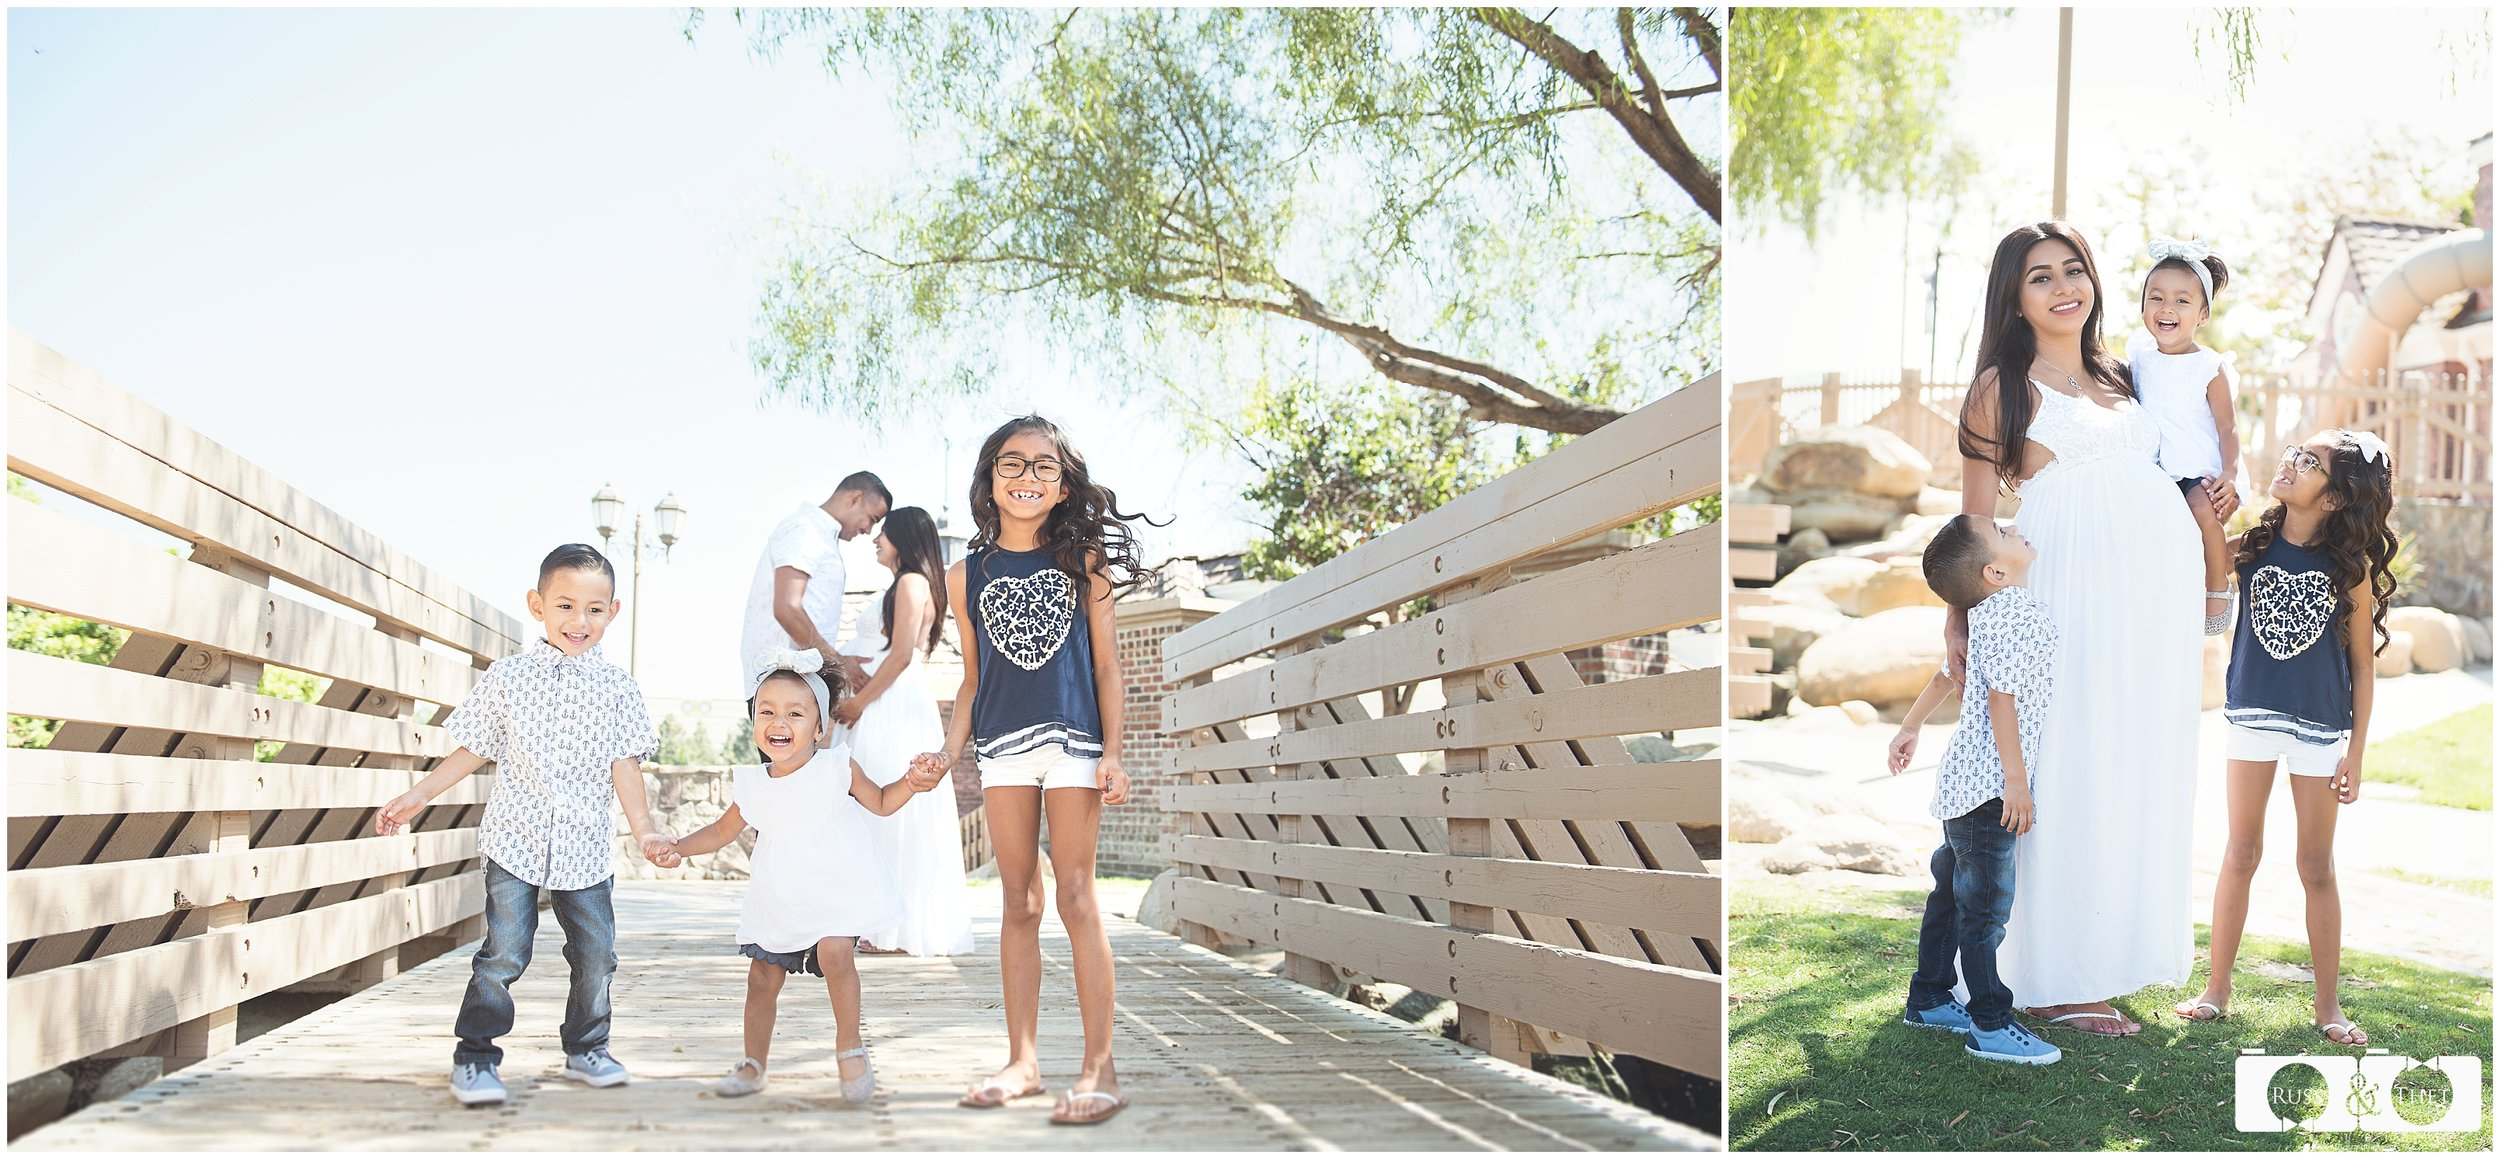 Cerritos-Heritage-Park-Family-Maternity-Kids-Portraits (7).jpg